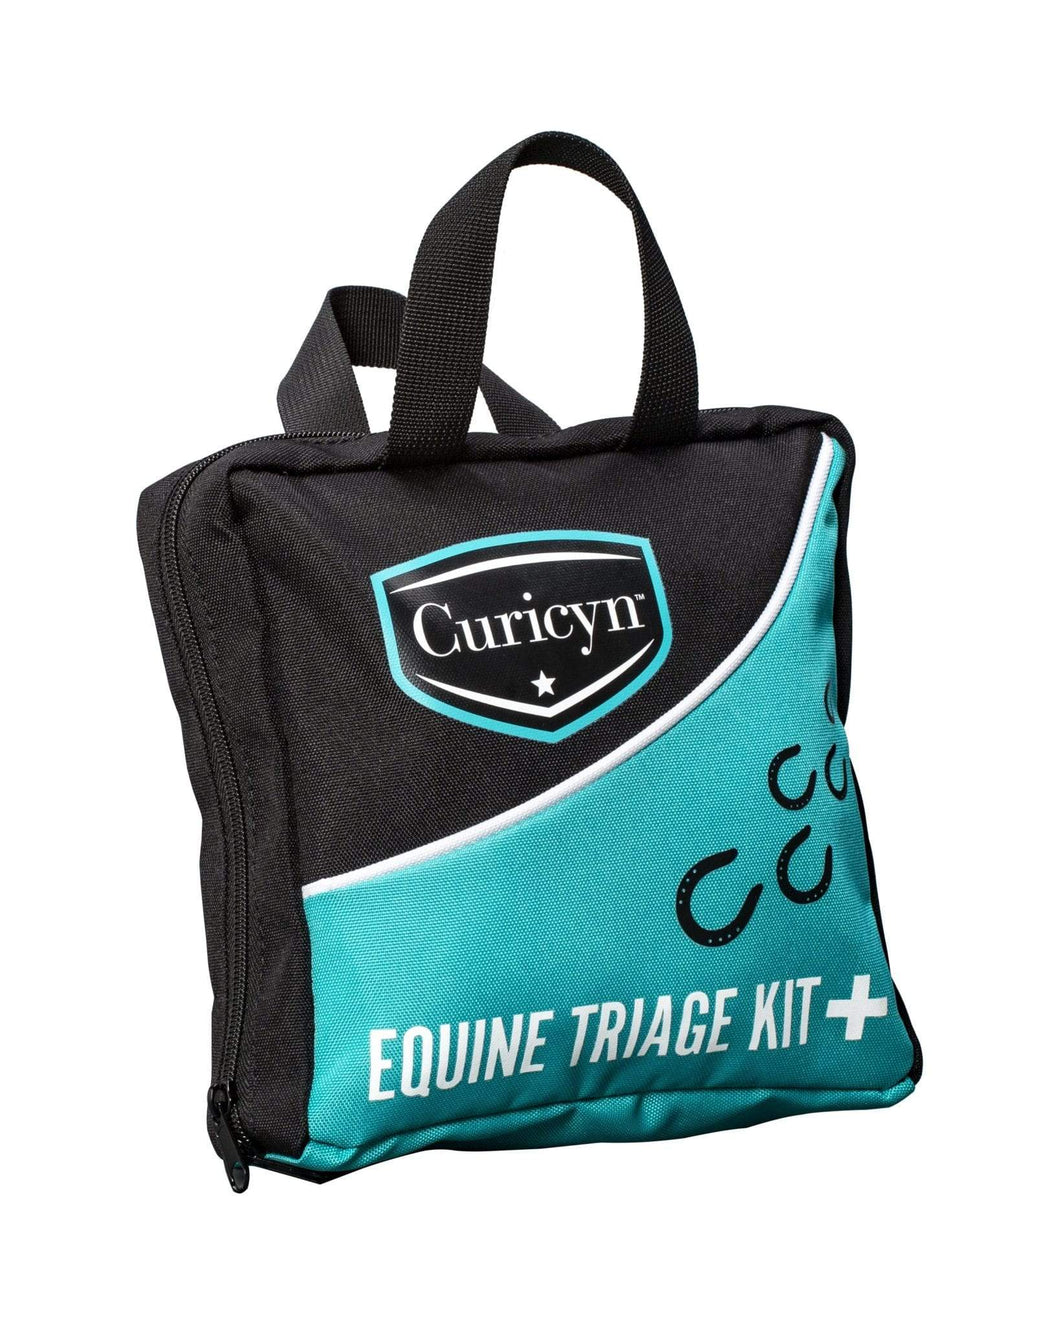 Curicyn Equine Triage Kit